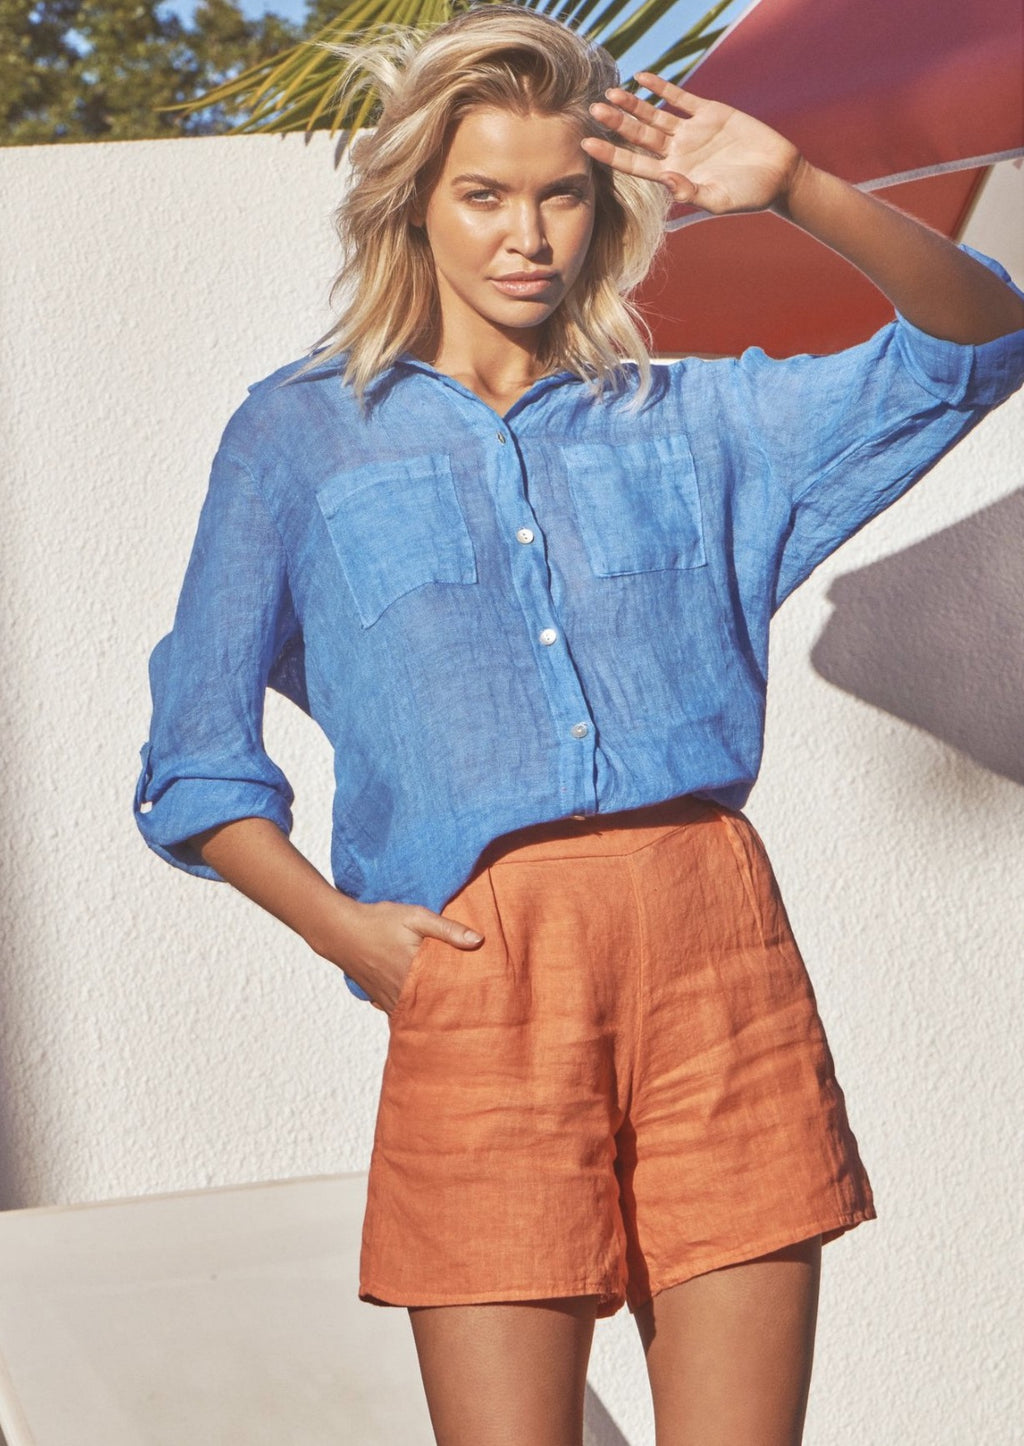 Hello Summer Short - Orange, by Ridley  Our new Linen shorts from Ridley the label will be on high rotation this summer. With a flat front waist band, elasticated back, and side pockets, these shorts are casual cool at its best.  Crafted from linen, the Hello Summer Short are a timeless staple that you'll pull out year after year.  Also available in White and Ink Pull On Style Pockets FABRICATION | 100% Linen - Cold Machine Wash